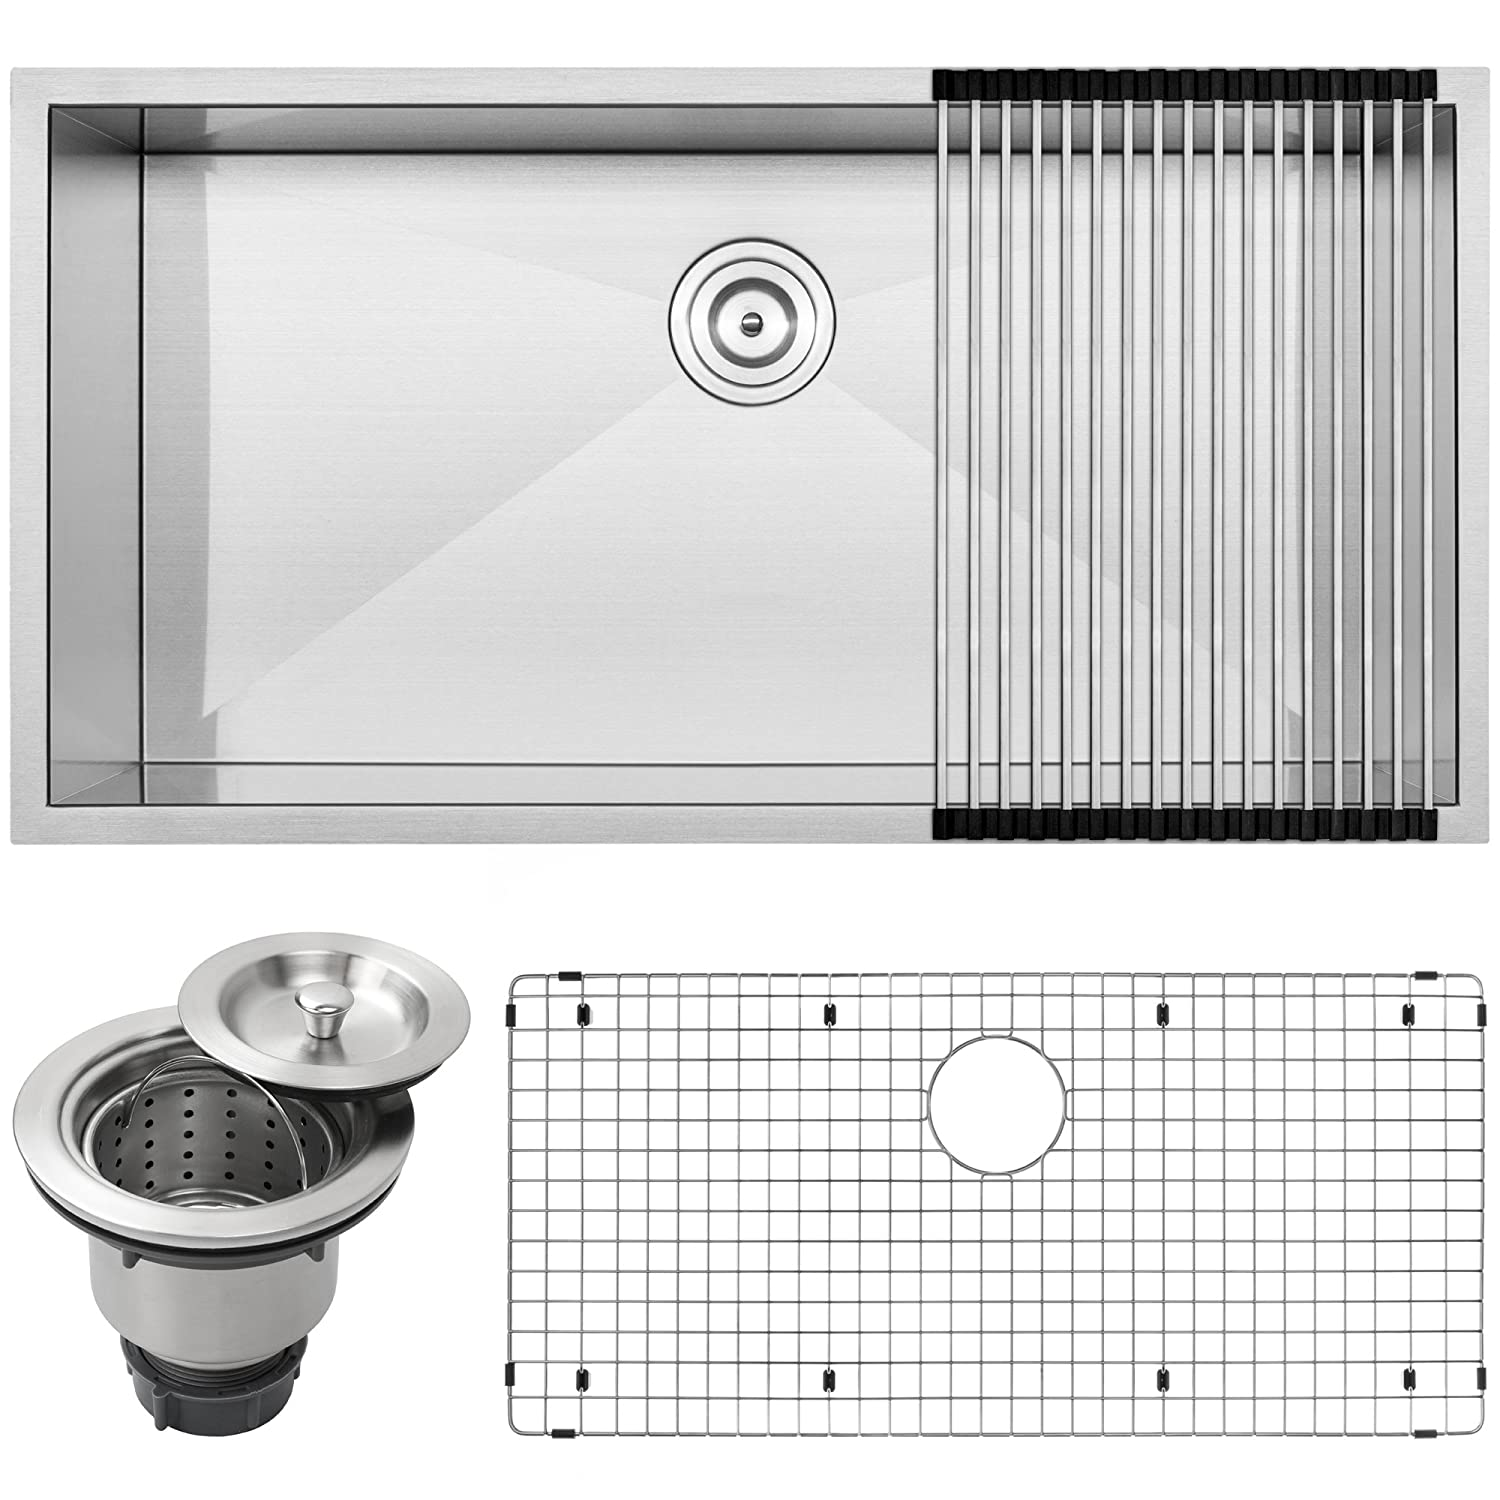 36 Ticor S3700 Pacific Series 16-Gauge Undermount Stainless Steel Single Bowl Zero Radius Square Kitchen Sink with Accessories